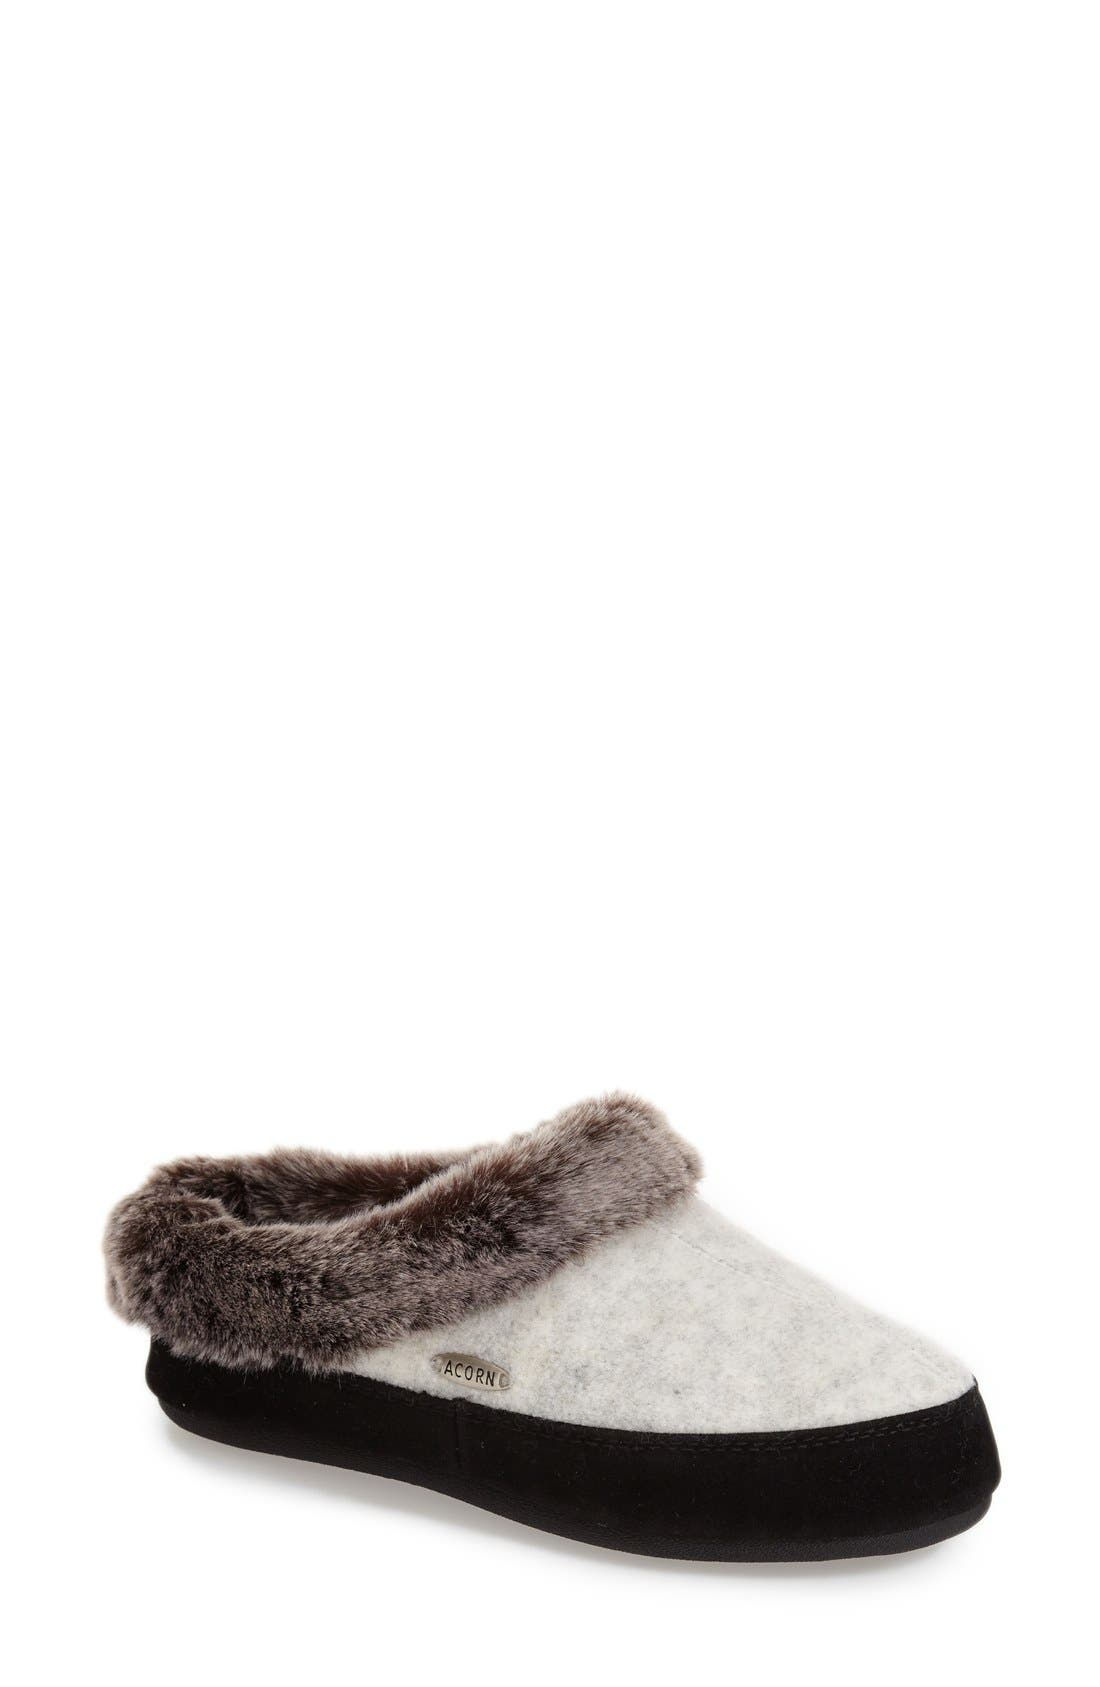 'Cloud Chilla Scuff' Slipper,                             Main thumbnail 2, color,